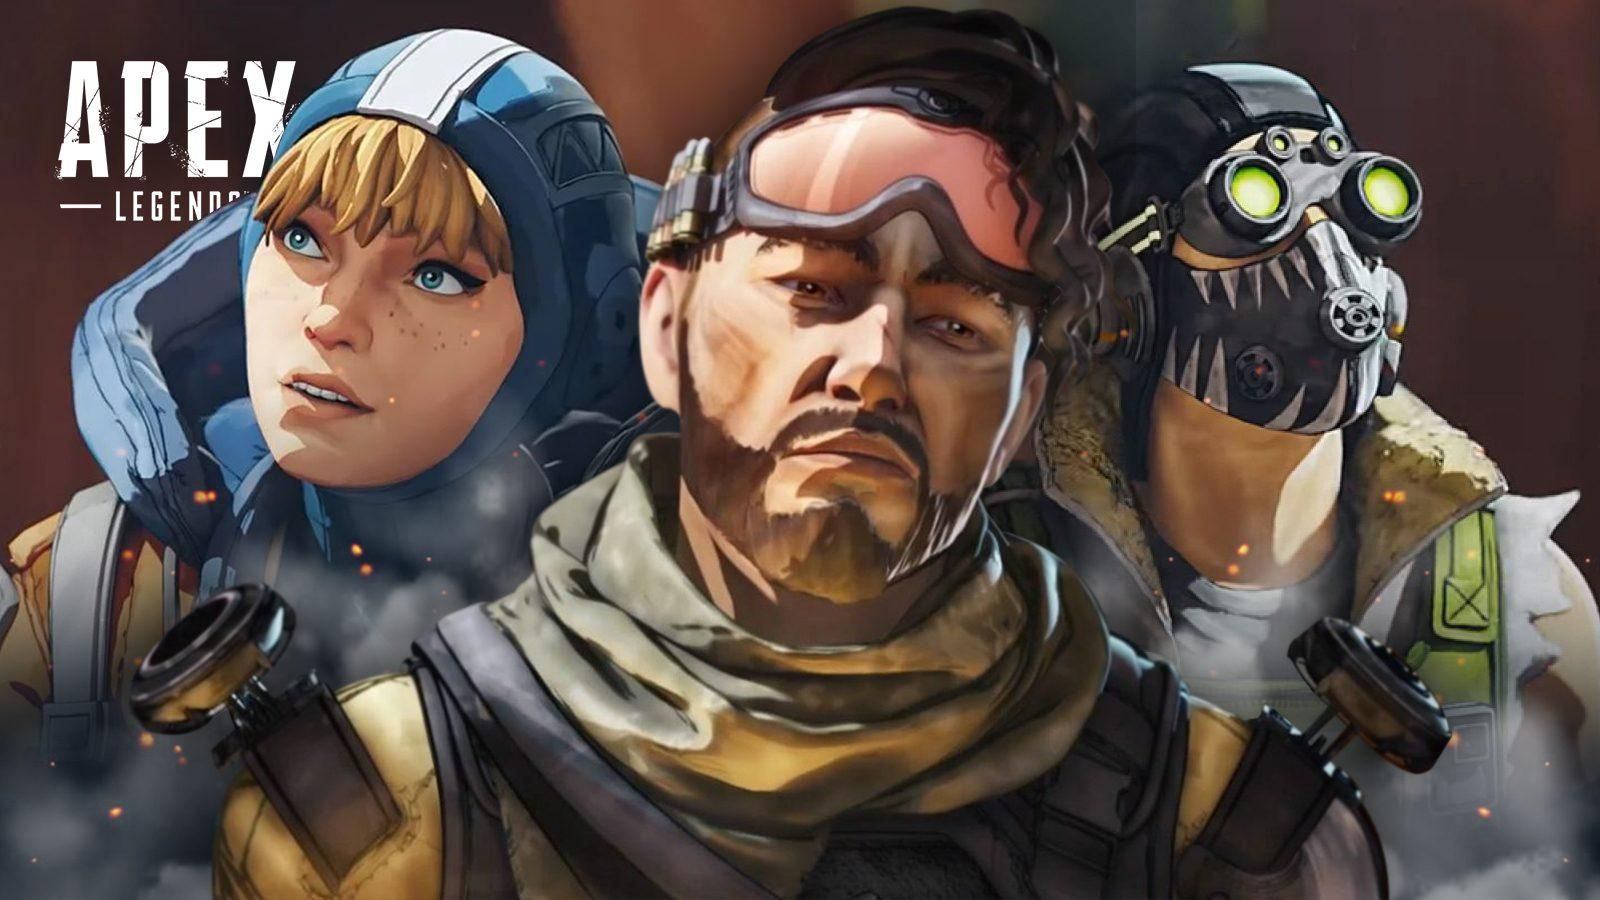 Apex's long list of colorful characters could be moving to next-gen as soon as late-2020.